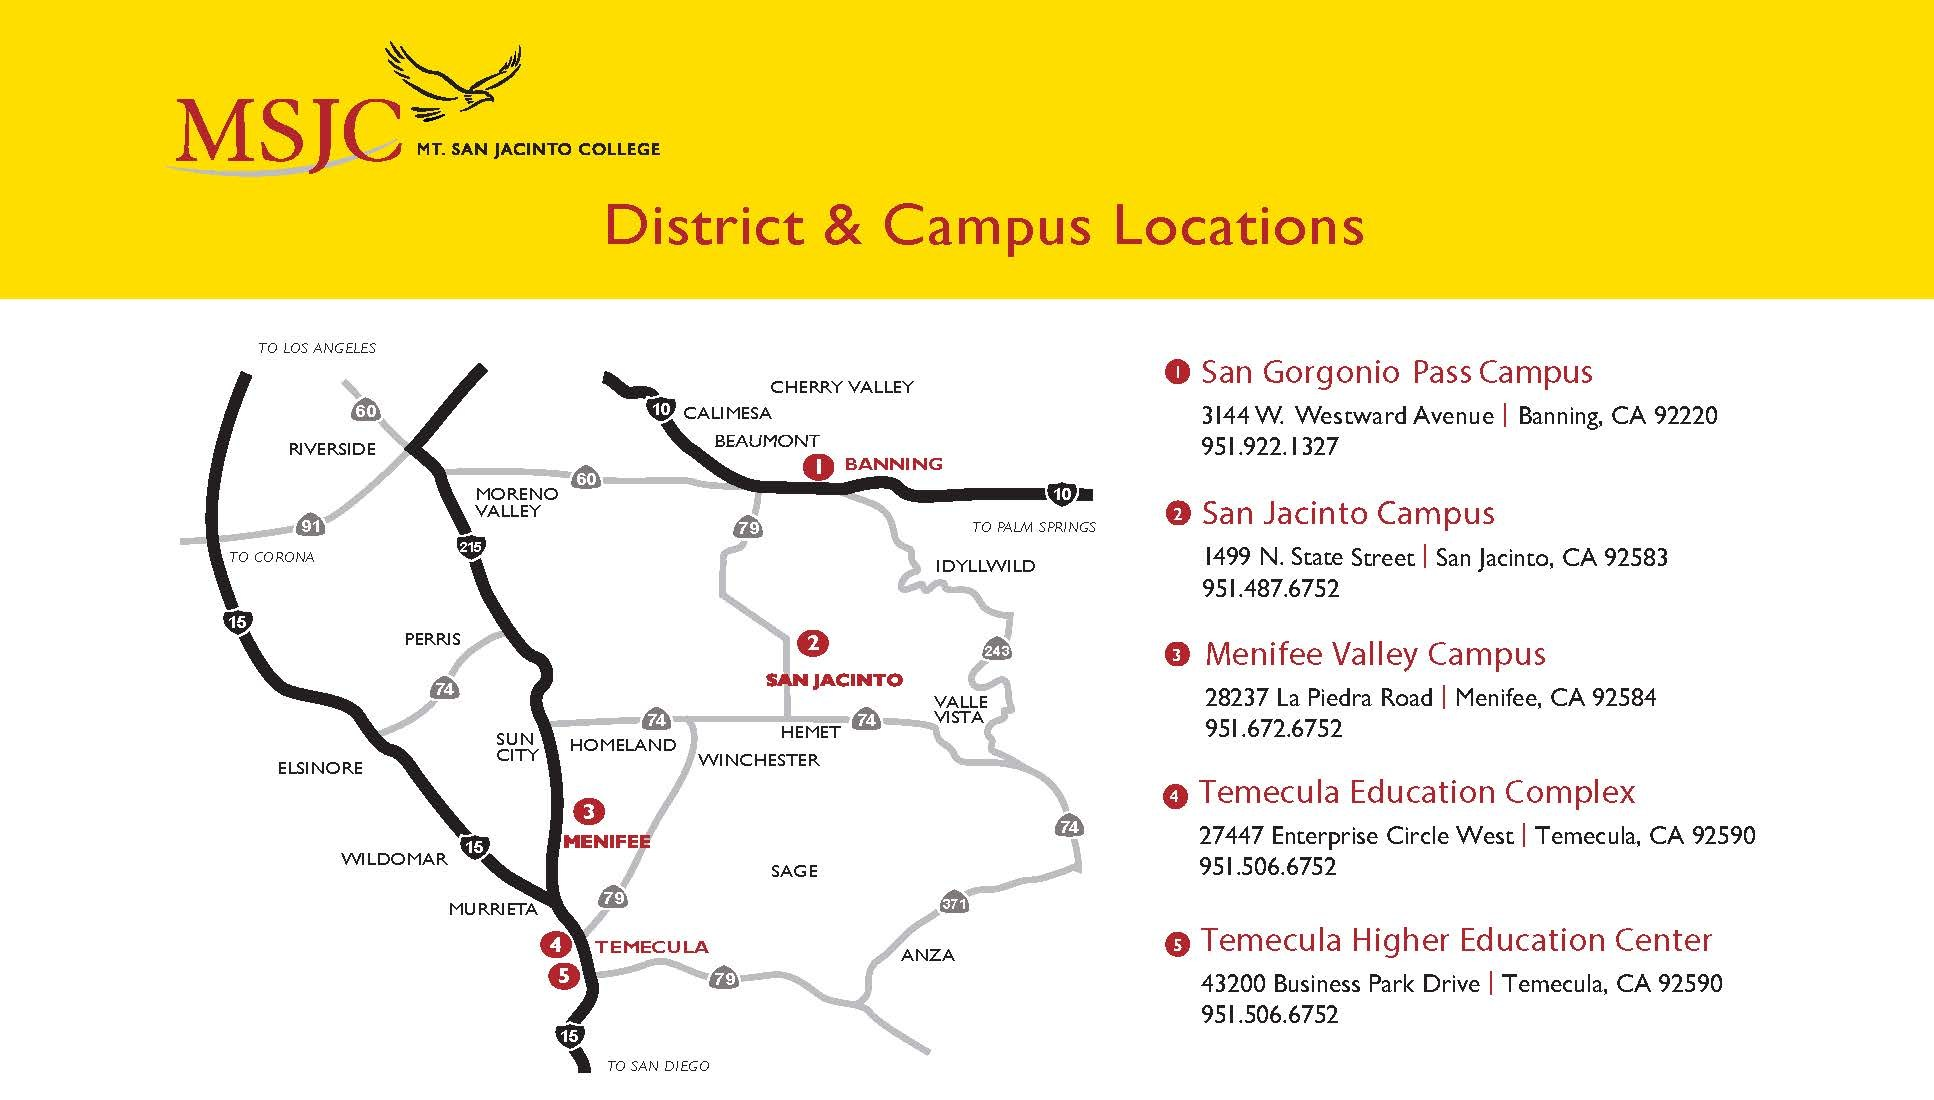 Map of Mt. San Jacinto College campuses